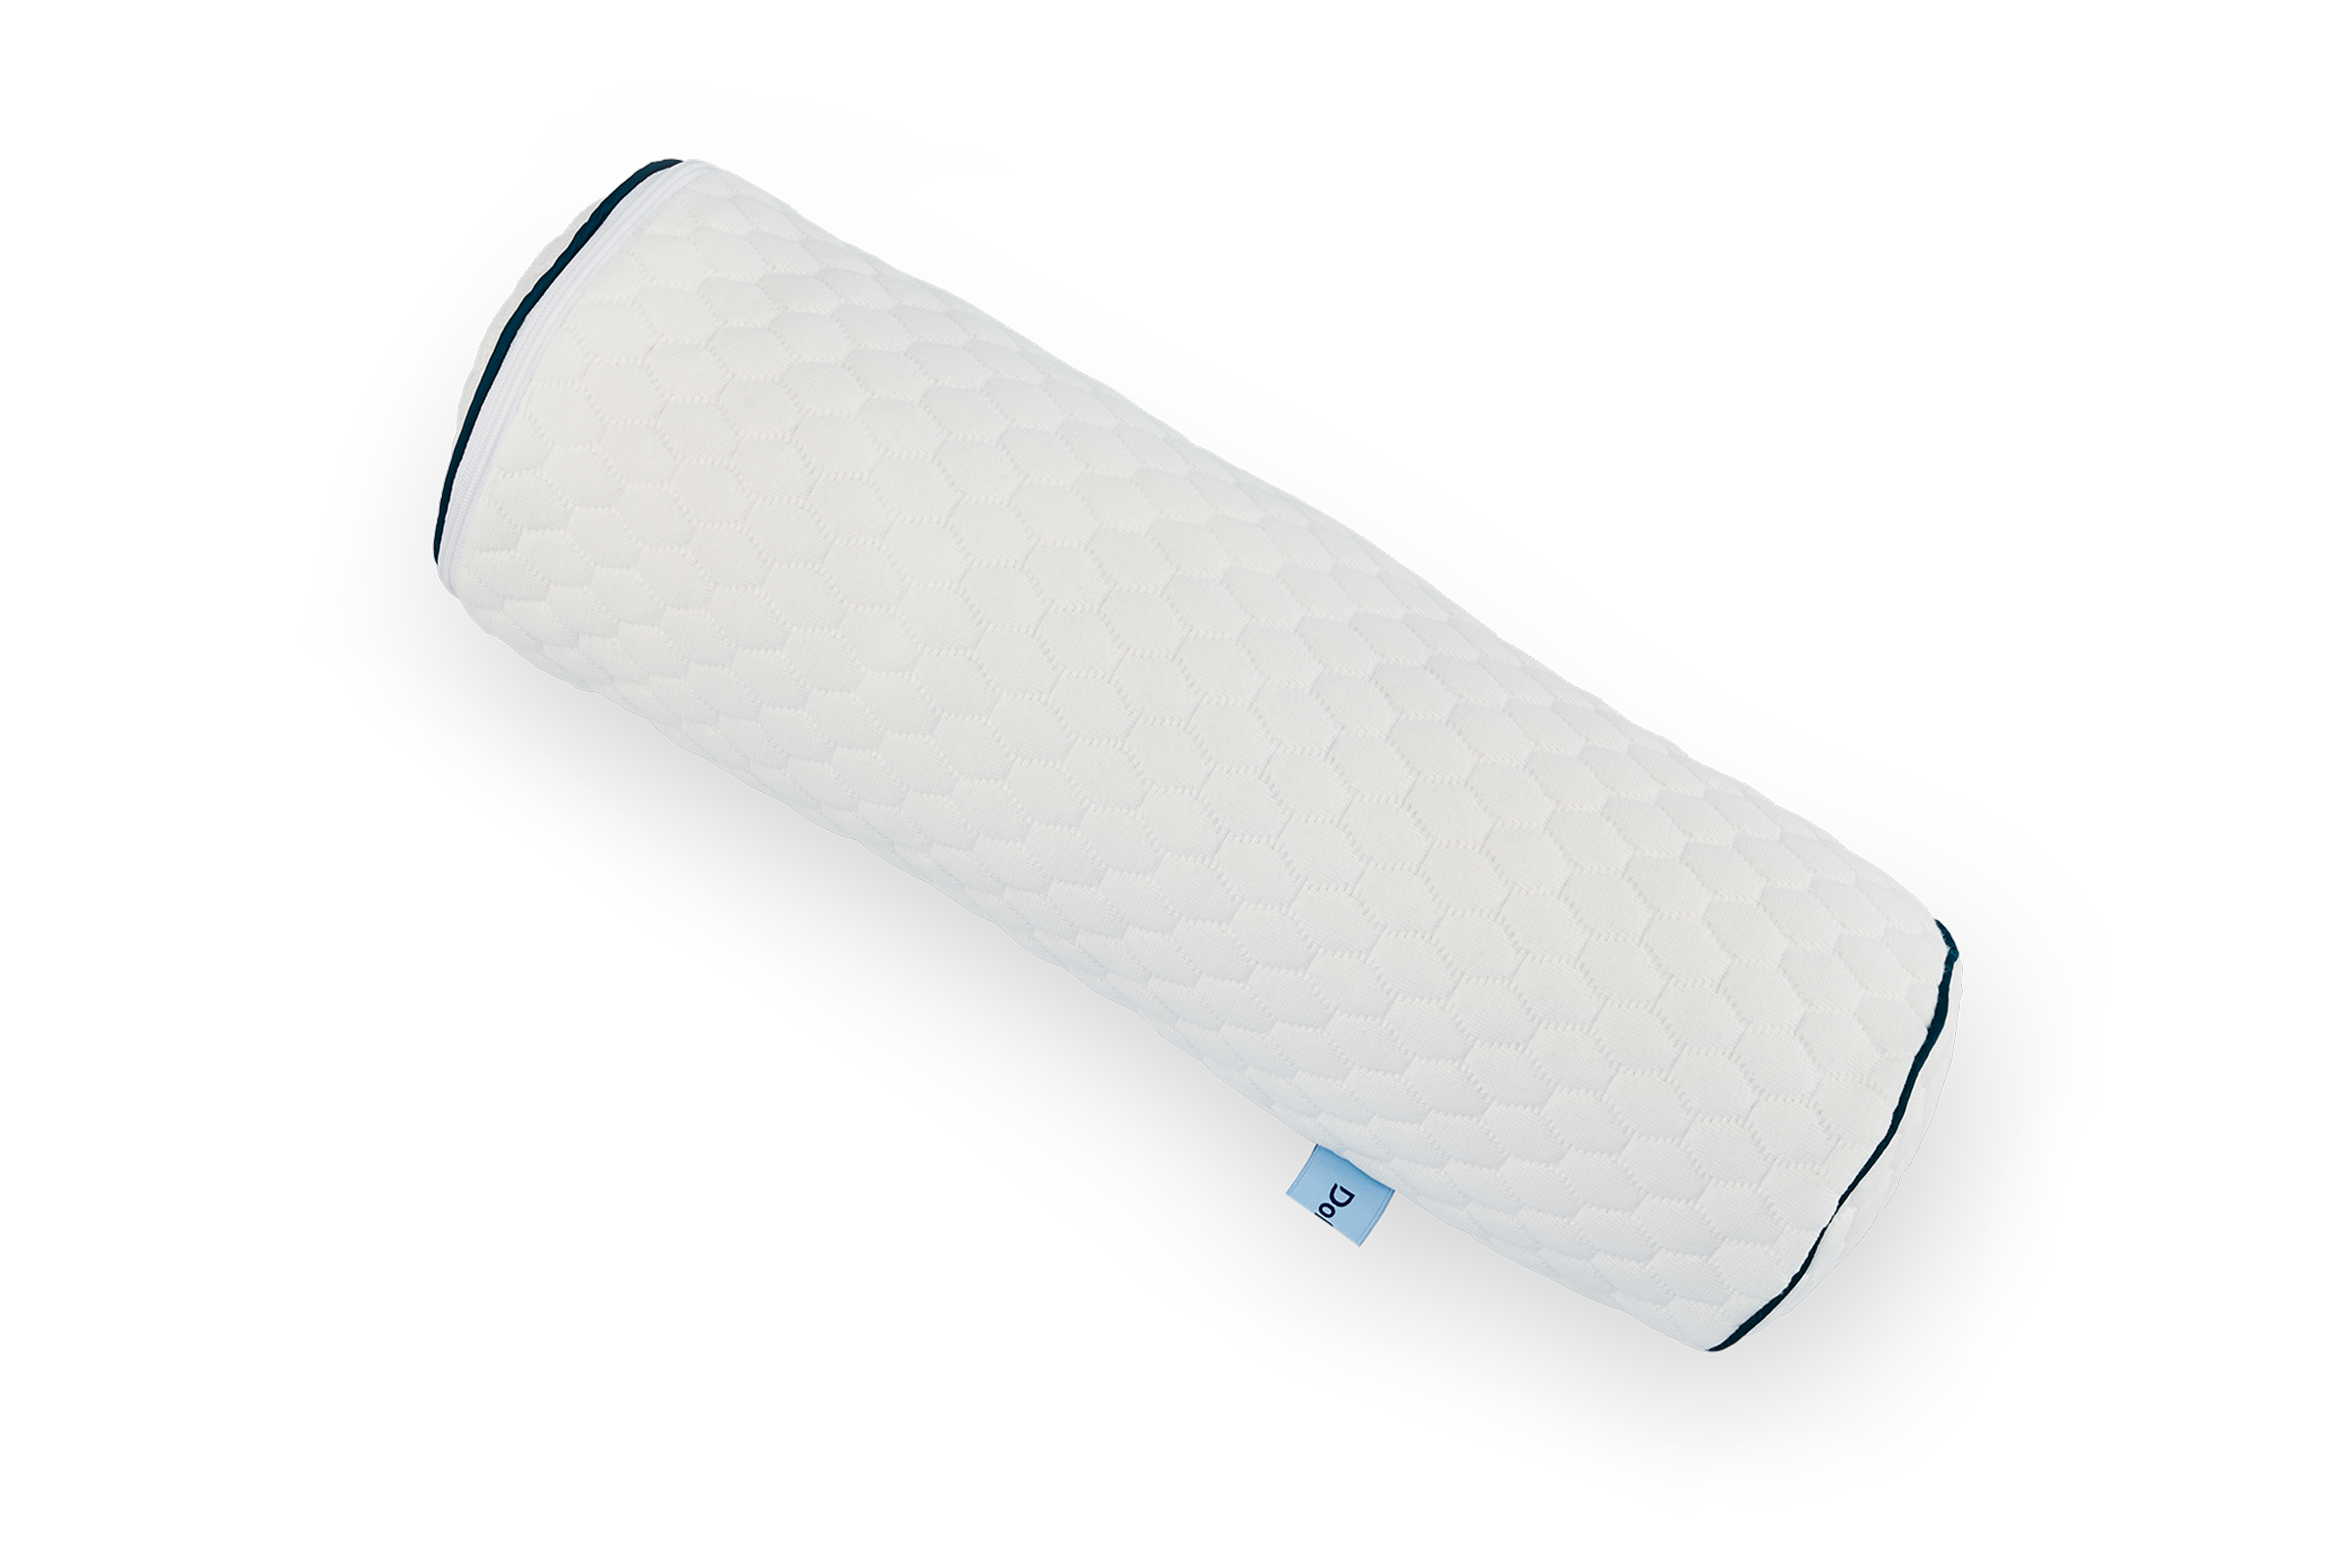 Replacement cover for the Travel Tube pillow Diameter: 13 cm Length: 40 cm